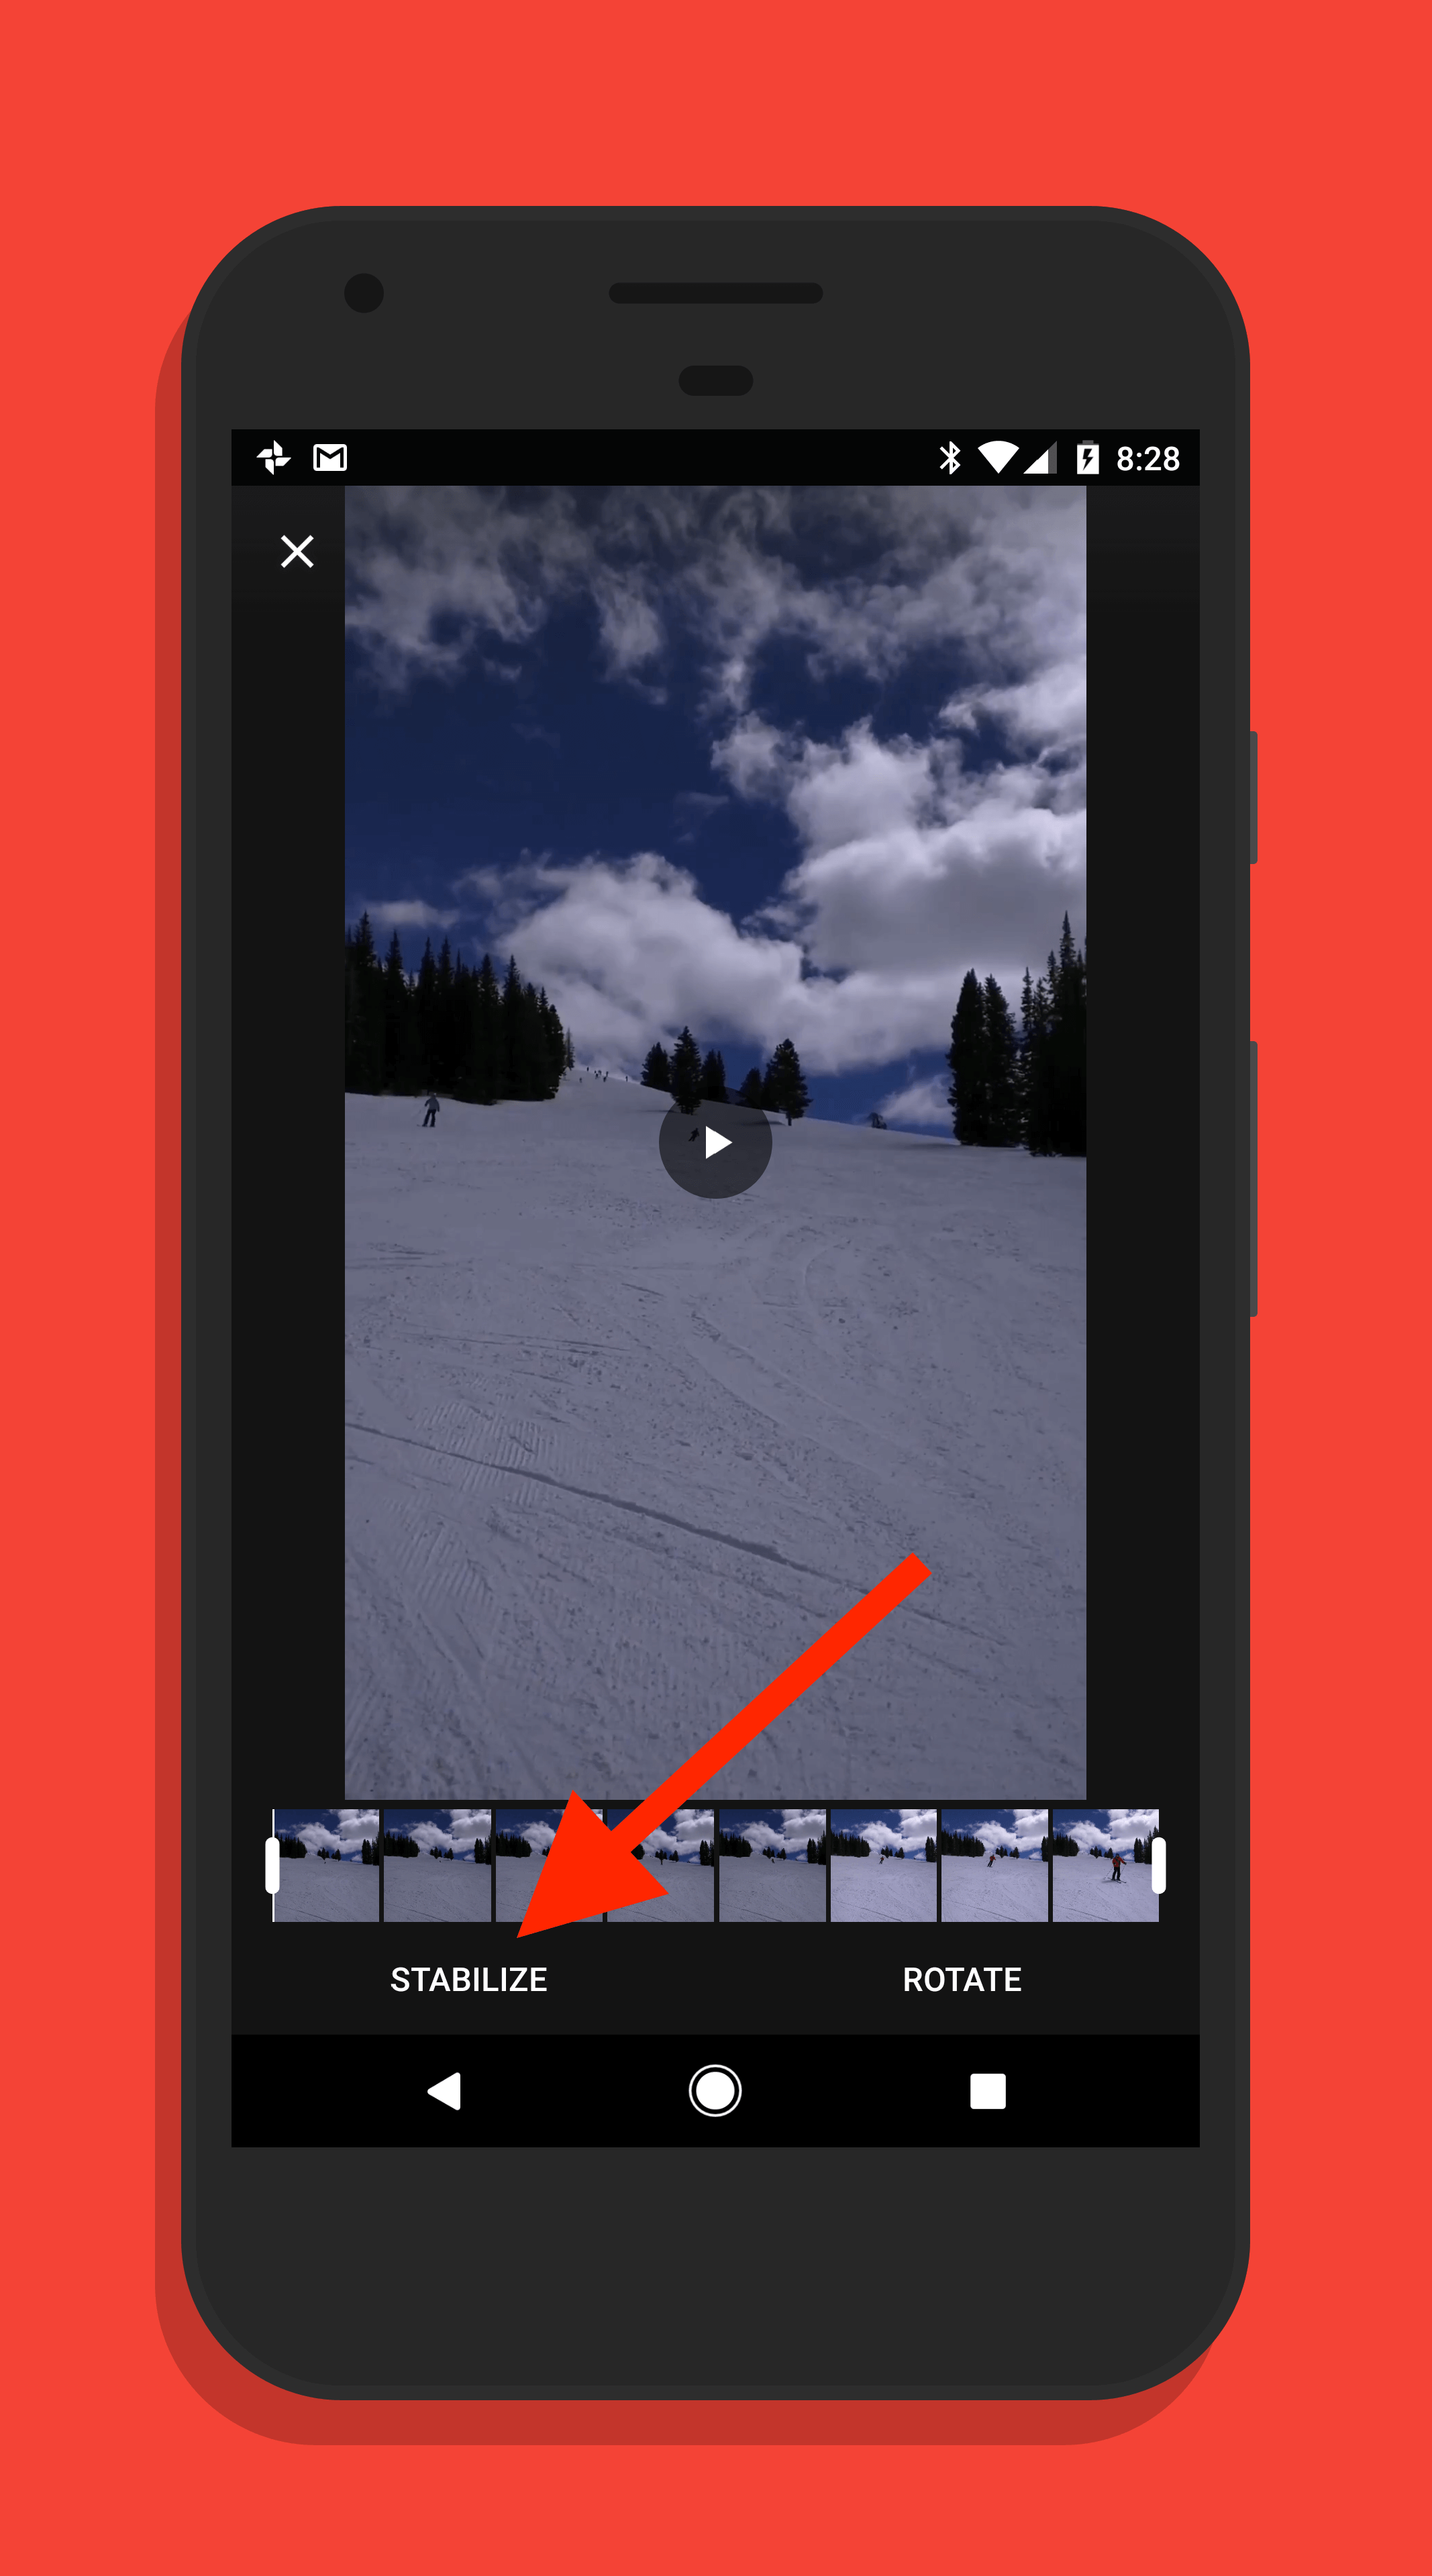 Video Stabilization in Google Photos